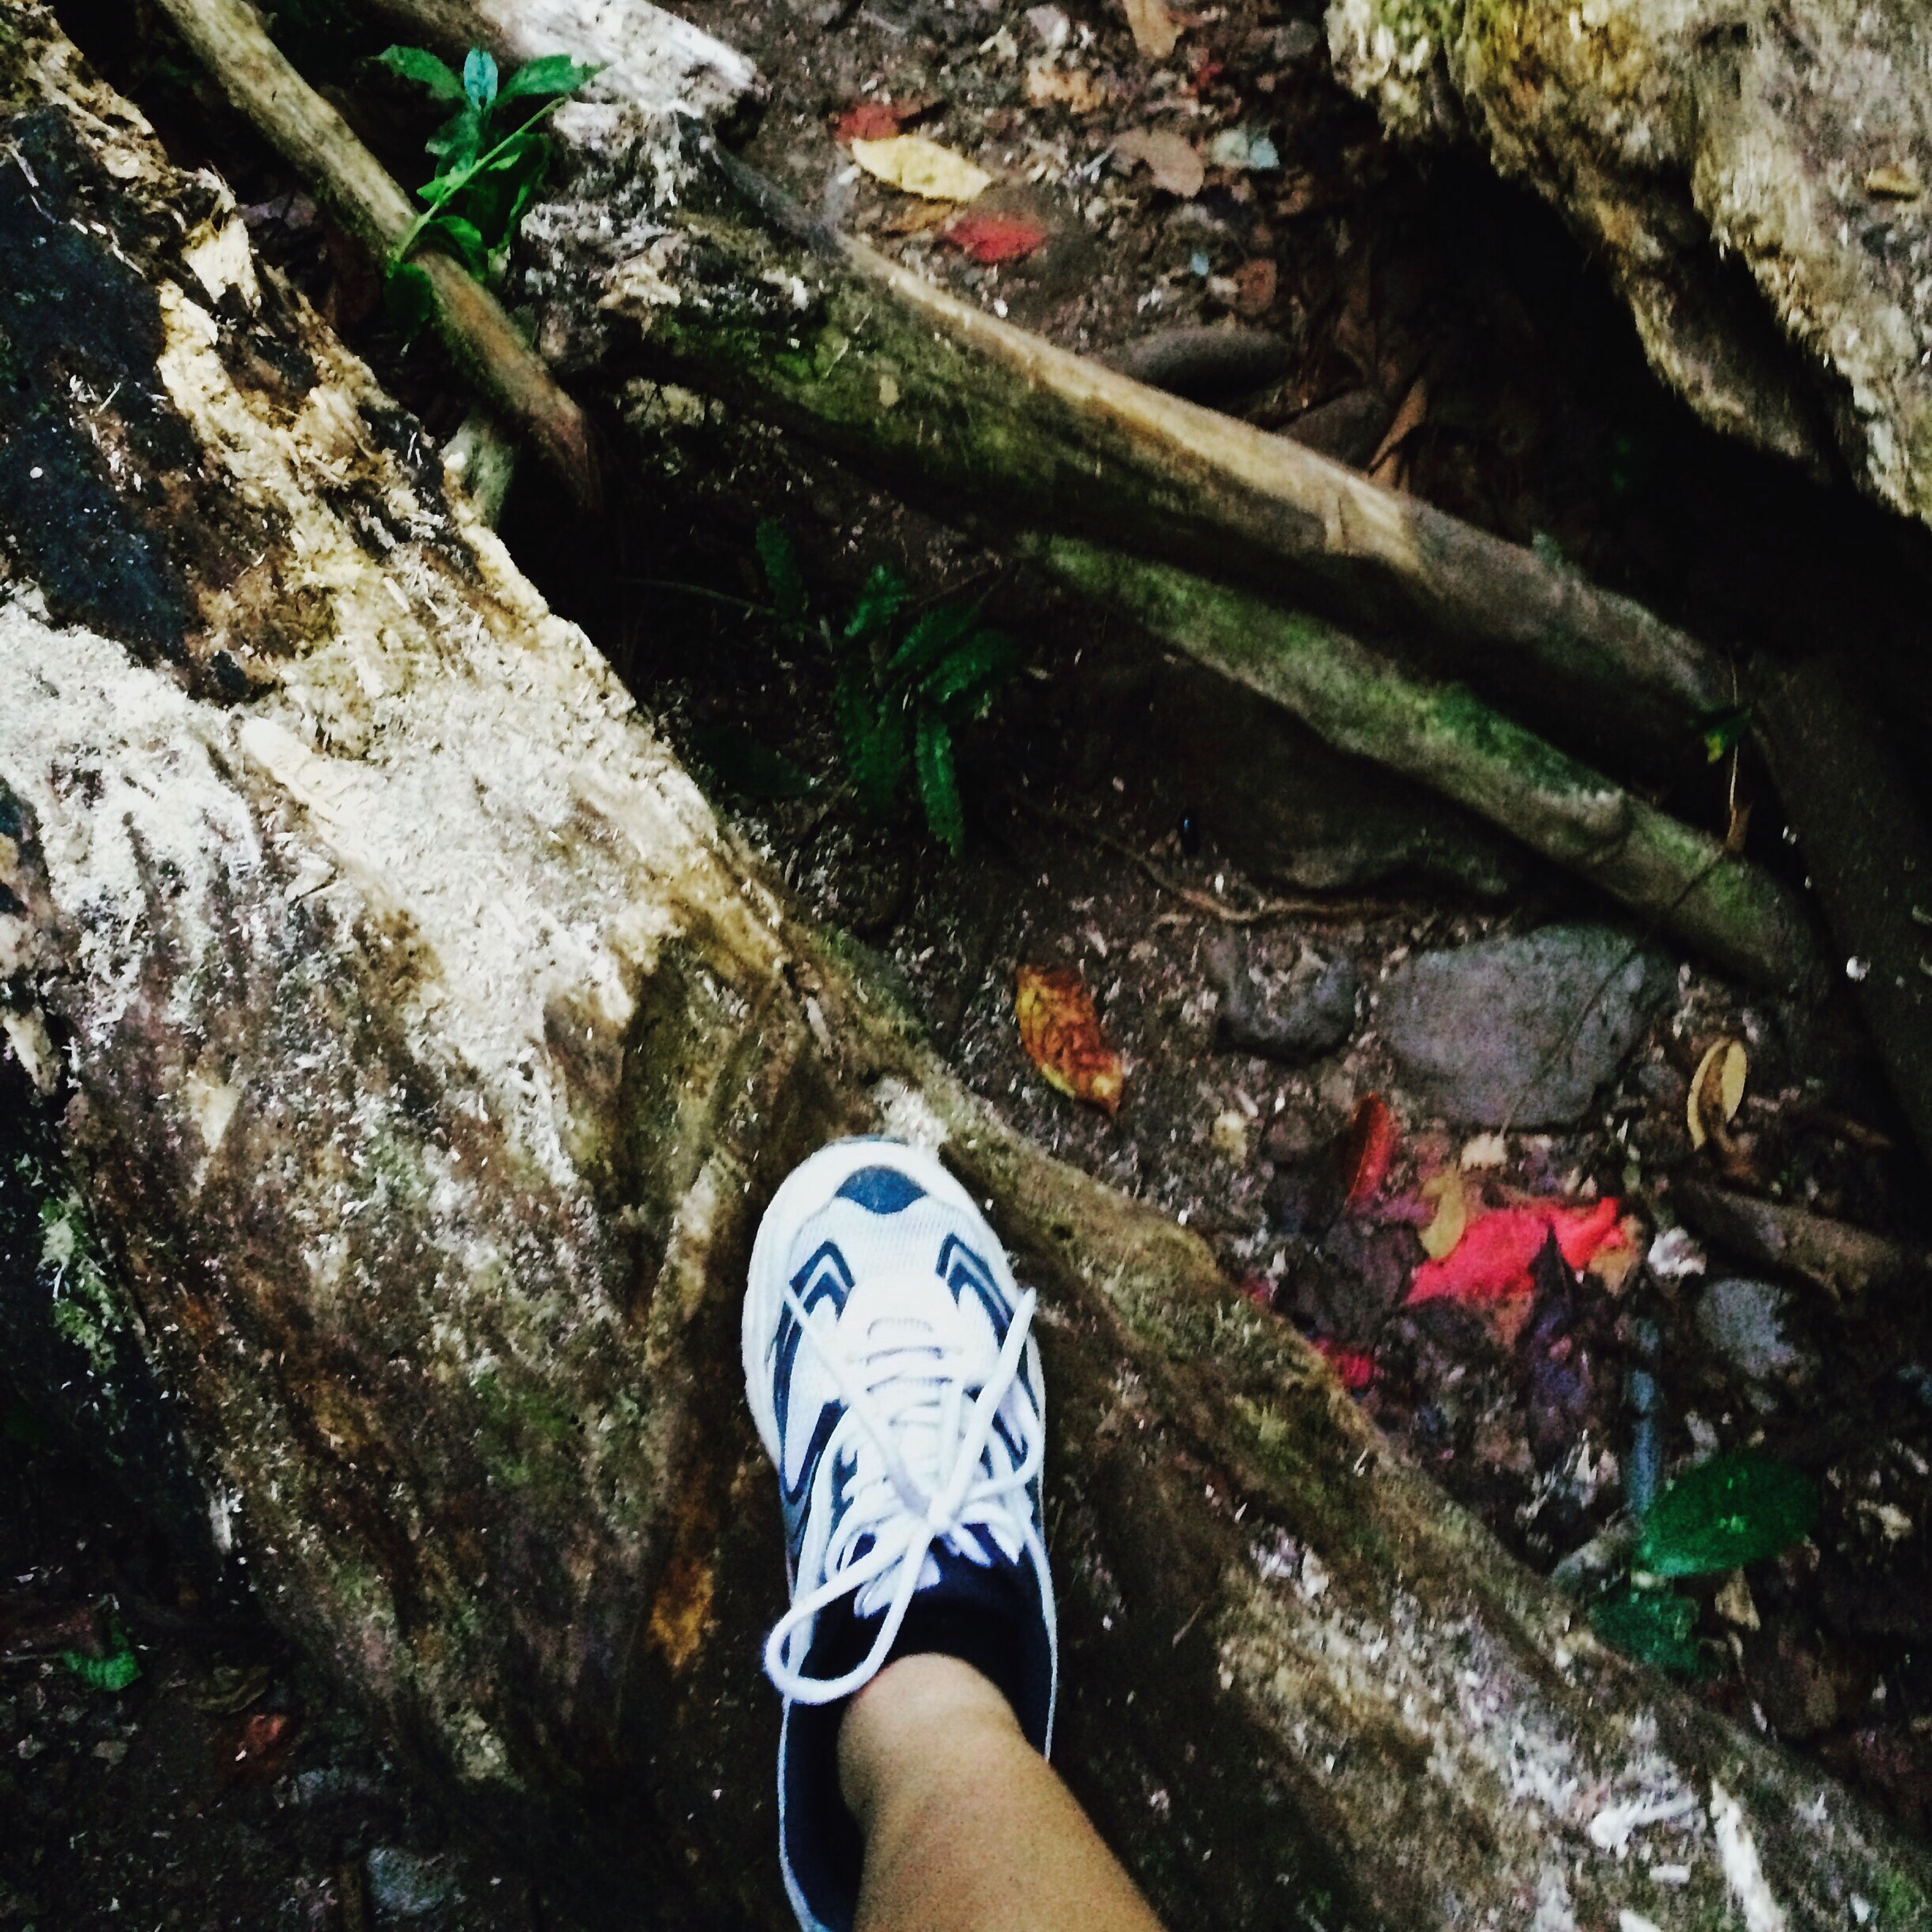 lifestyles, leisure activity, low section, standing, person, personal perspective, shoe, tree, men, casual clothing, rock - object, high angle view, unrecognizable person, forest, day, outdoors, nature